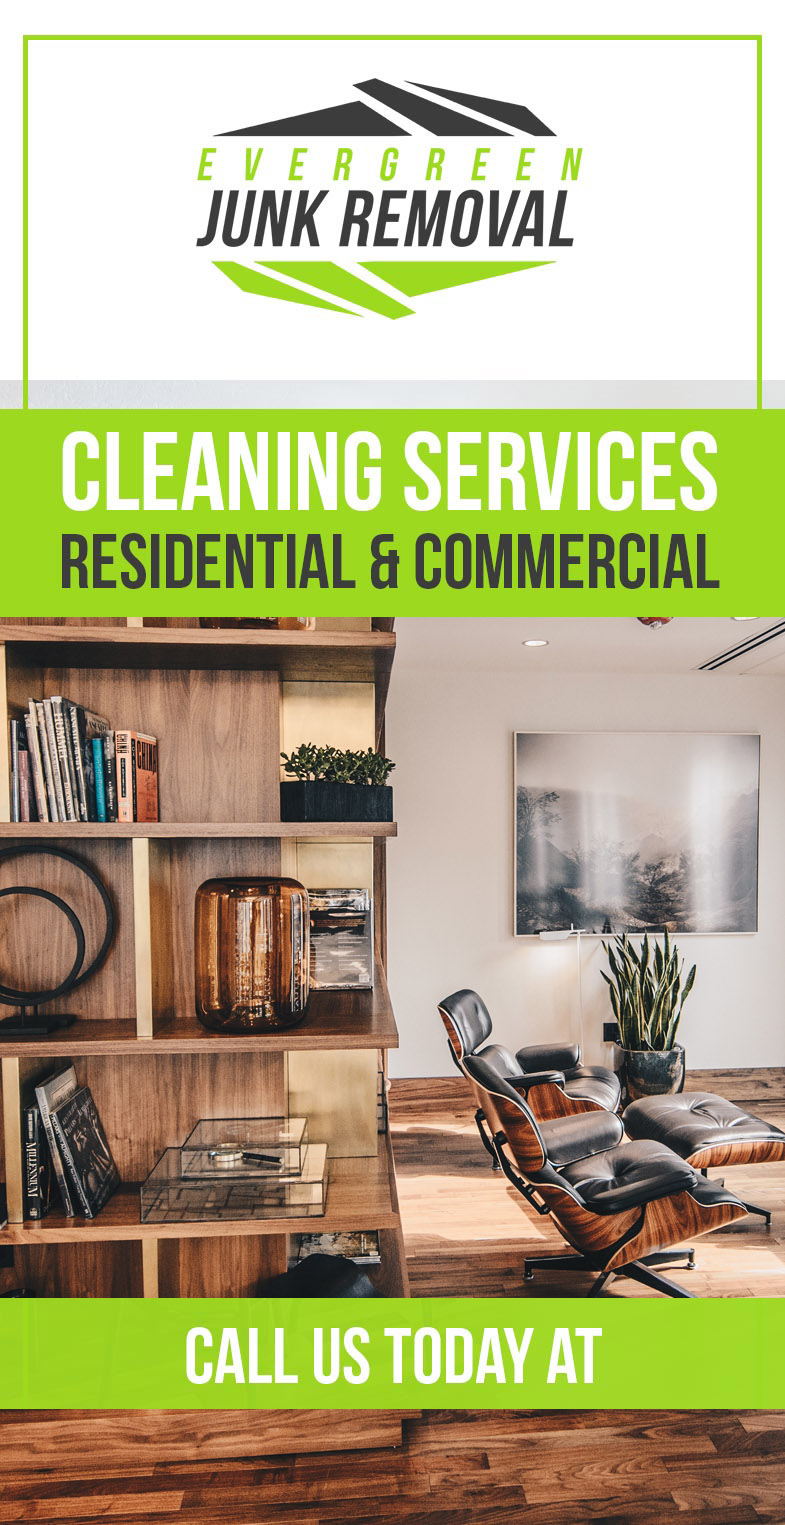 Lake Park Commercial Cleaning